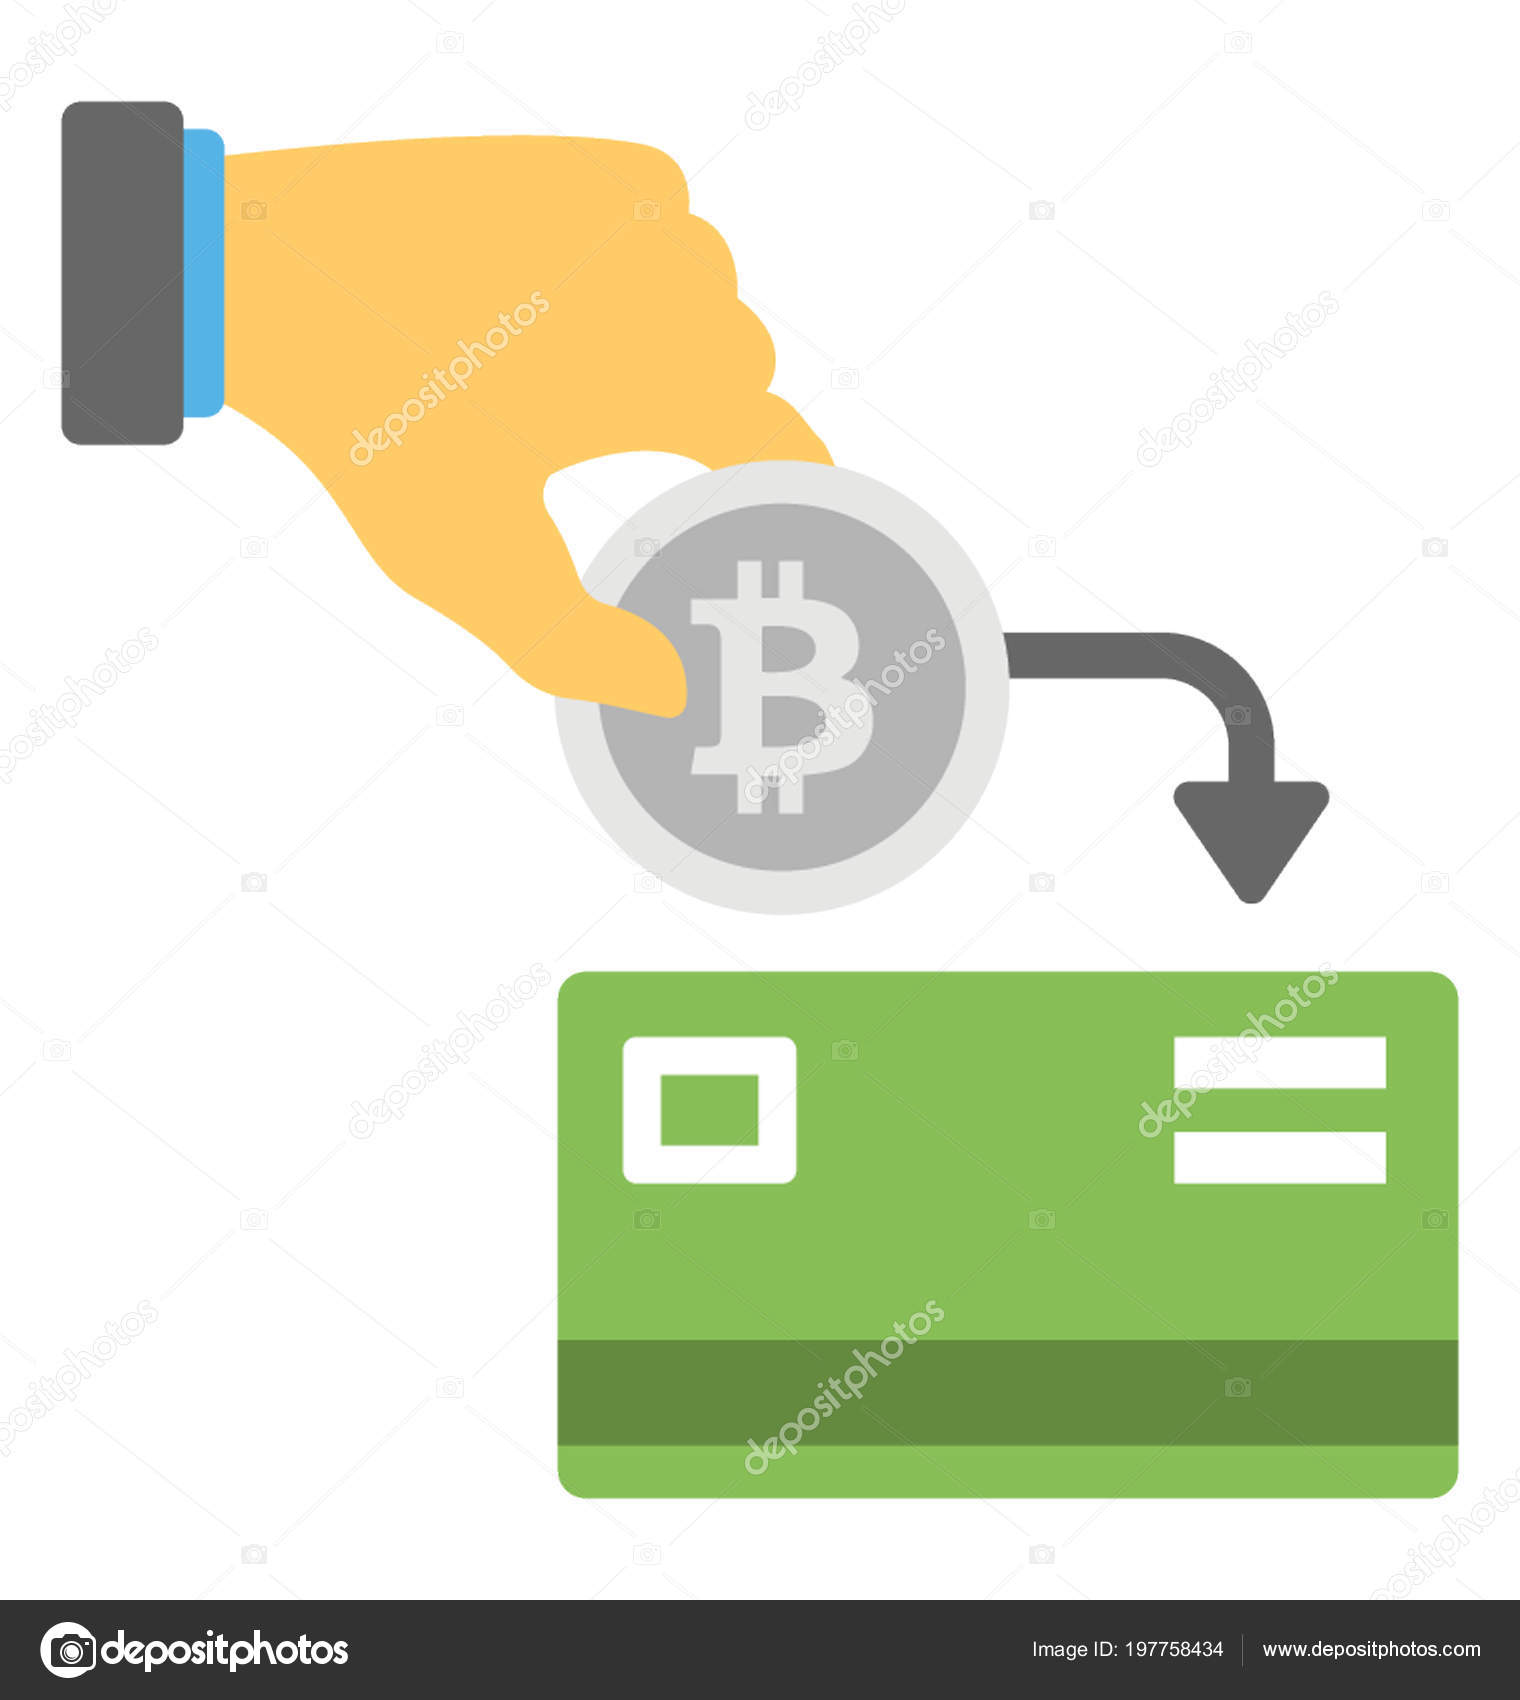 Icon Symbolising Hand Performing Direct Bitcoin Payment Faucet Hub